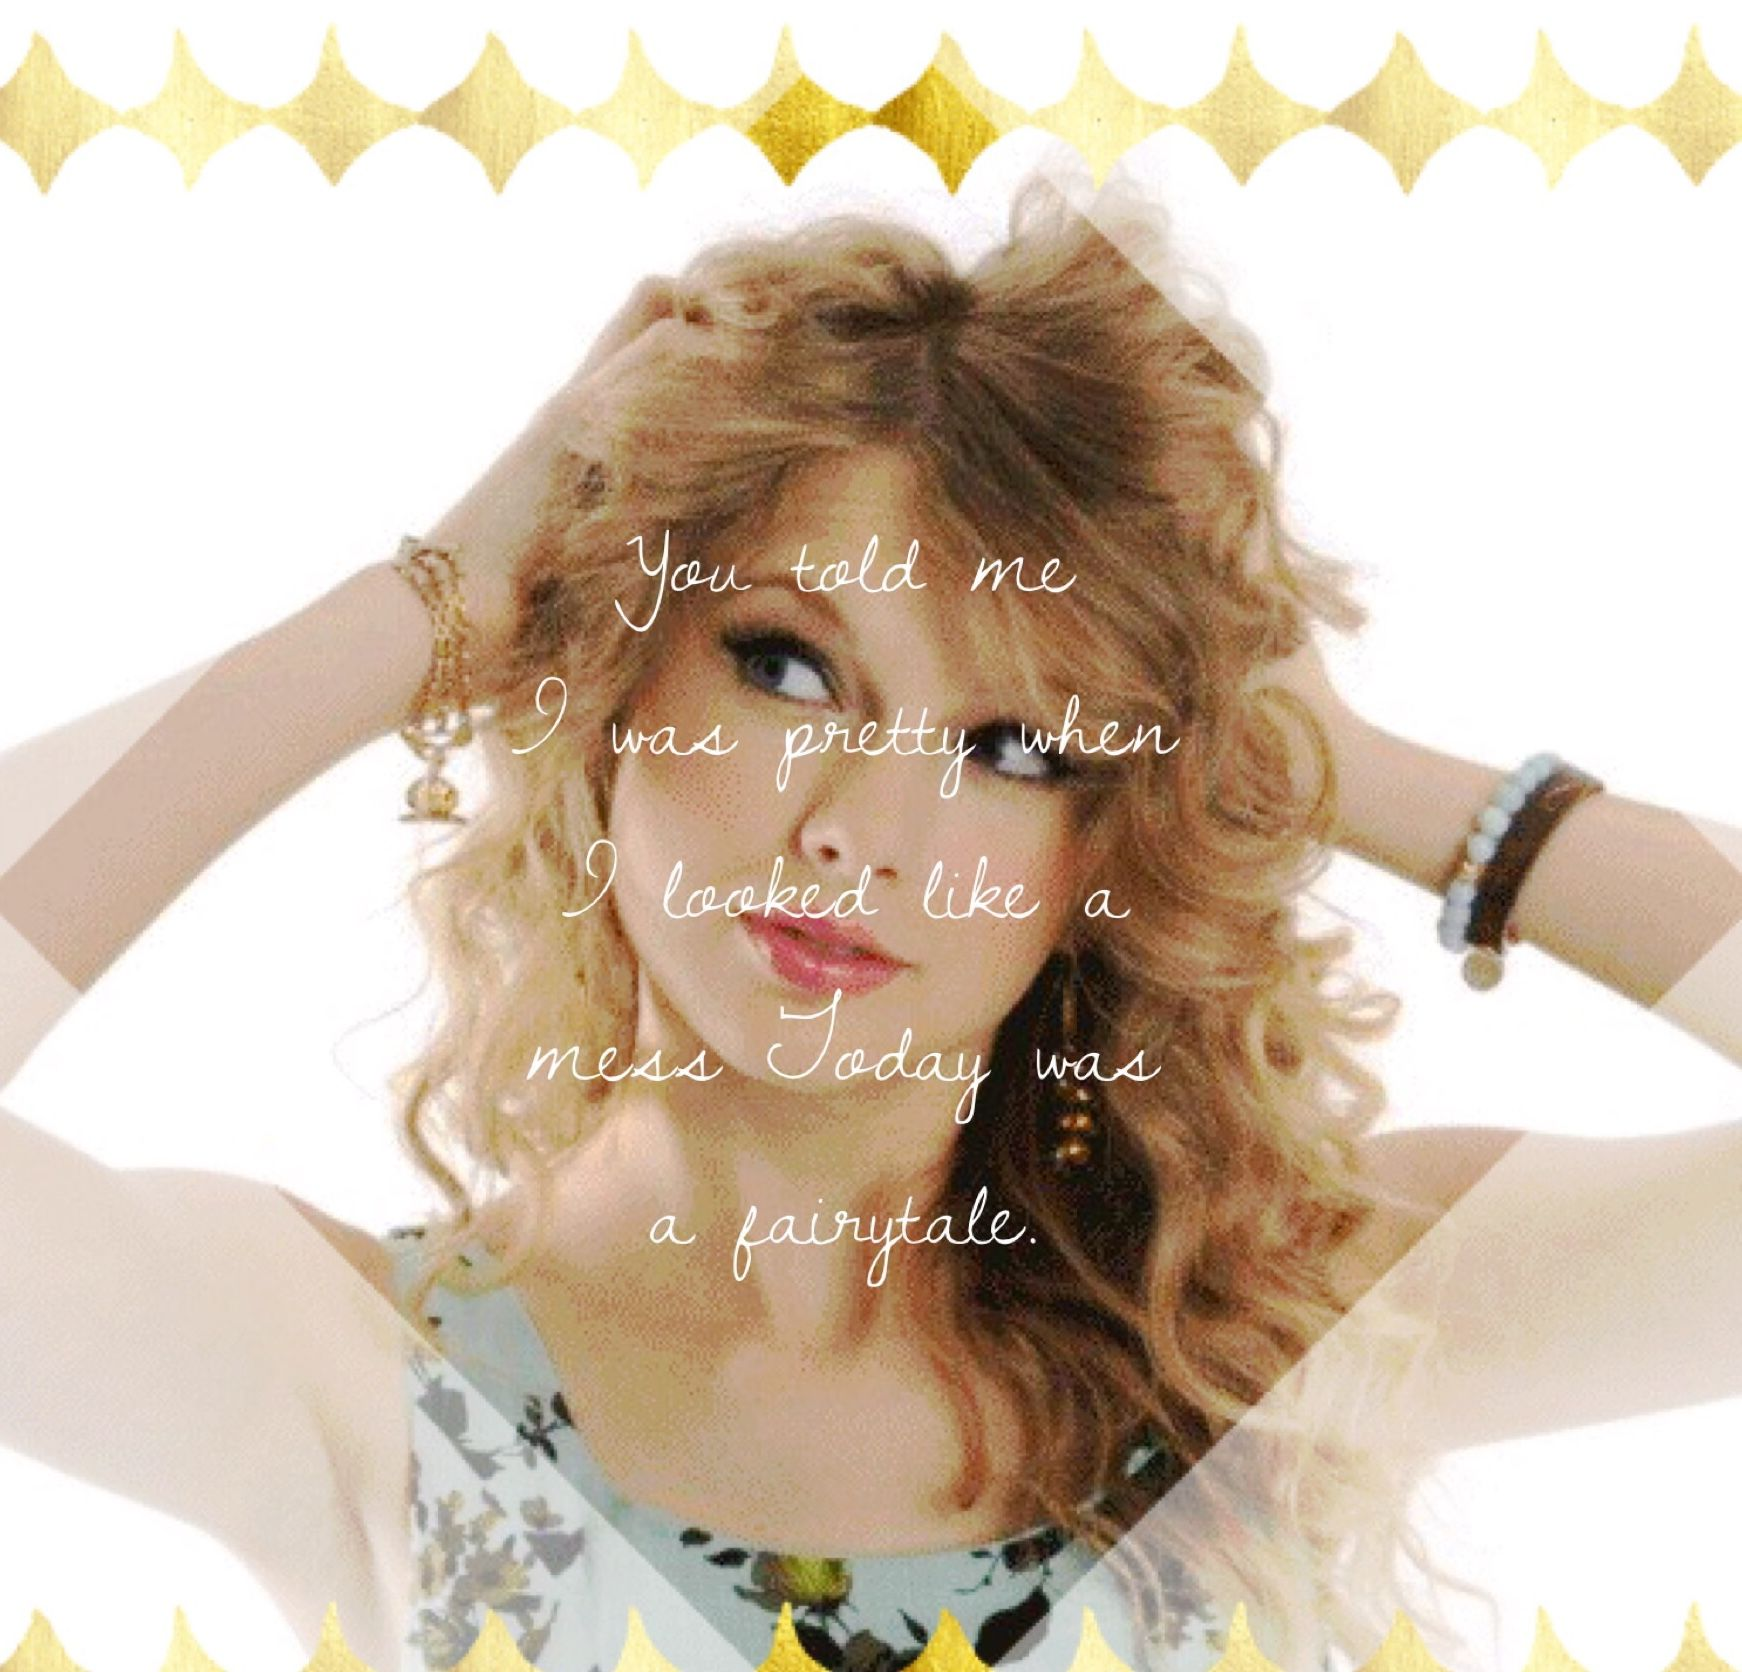 Today Was A Fairytale Lyrics Taylor Swift Song Lyrics Taylor Swift Songs Music Lyrics